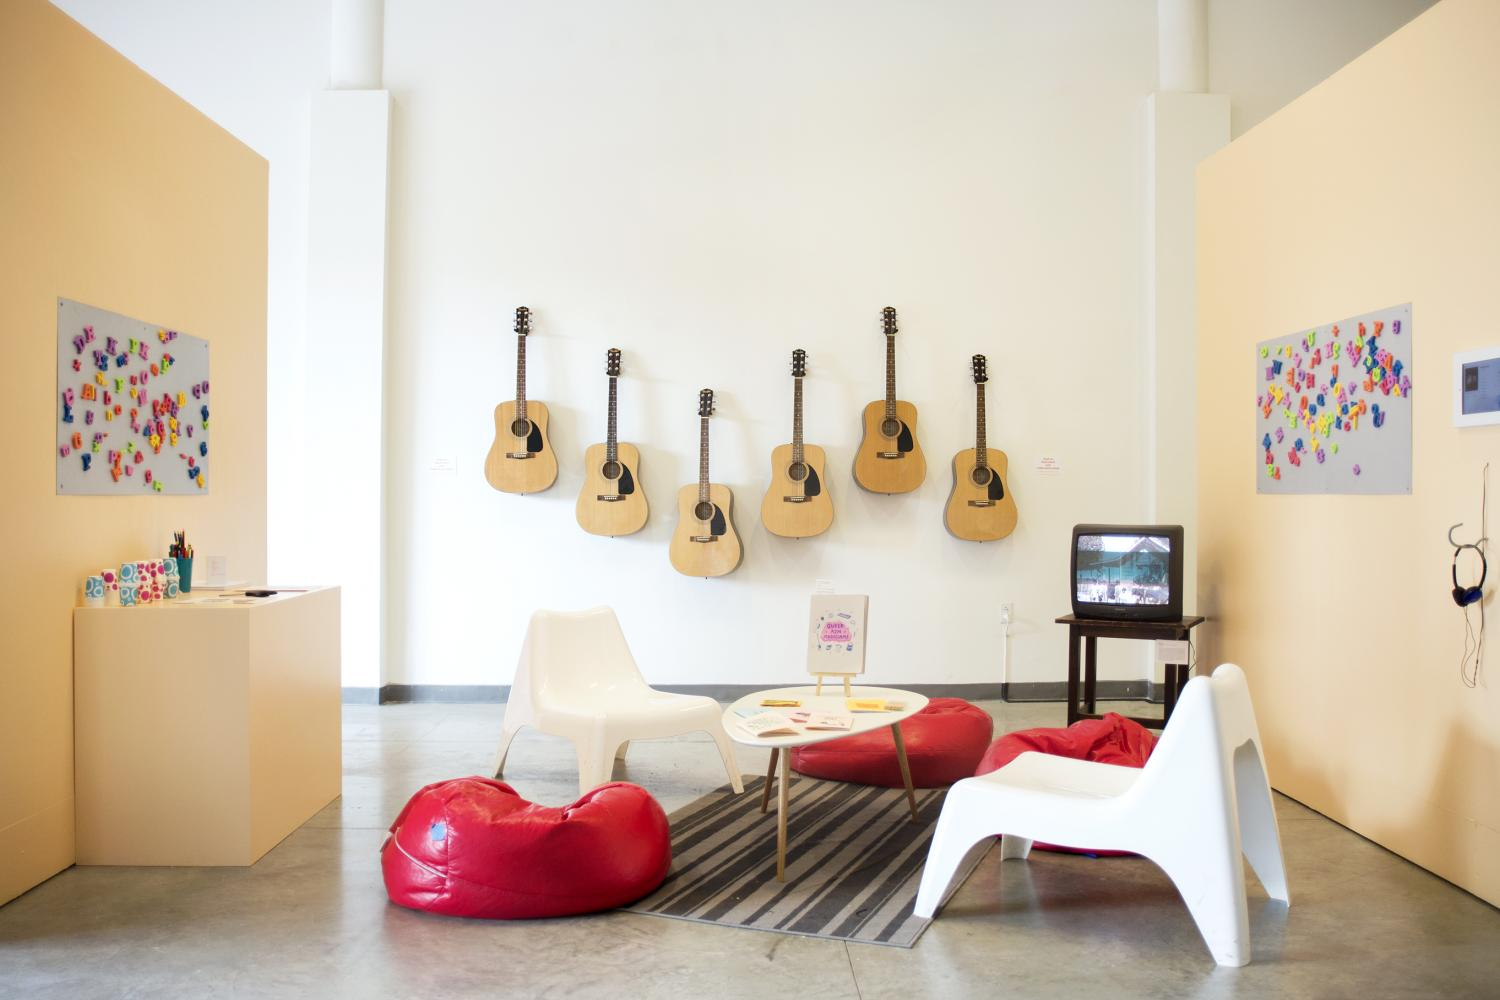 Between two yellow walls there is a living room setup consisting of a white coffee table situated on a dark grey rug and surrounded by red beanbag chairs and white plastic chairs. In the corner is a small TV on top of a wooden end table. In the background there are six guitars mounted on the white wall. The yellow walls have steel sheets mounted on them. On the steel sheets are colorful foam alphabet magnets. - The Beat of Resistance exhibition